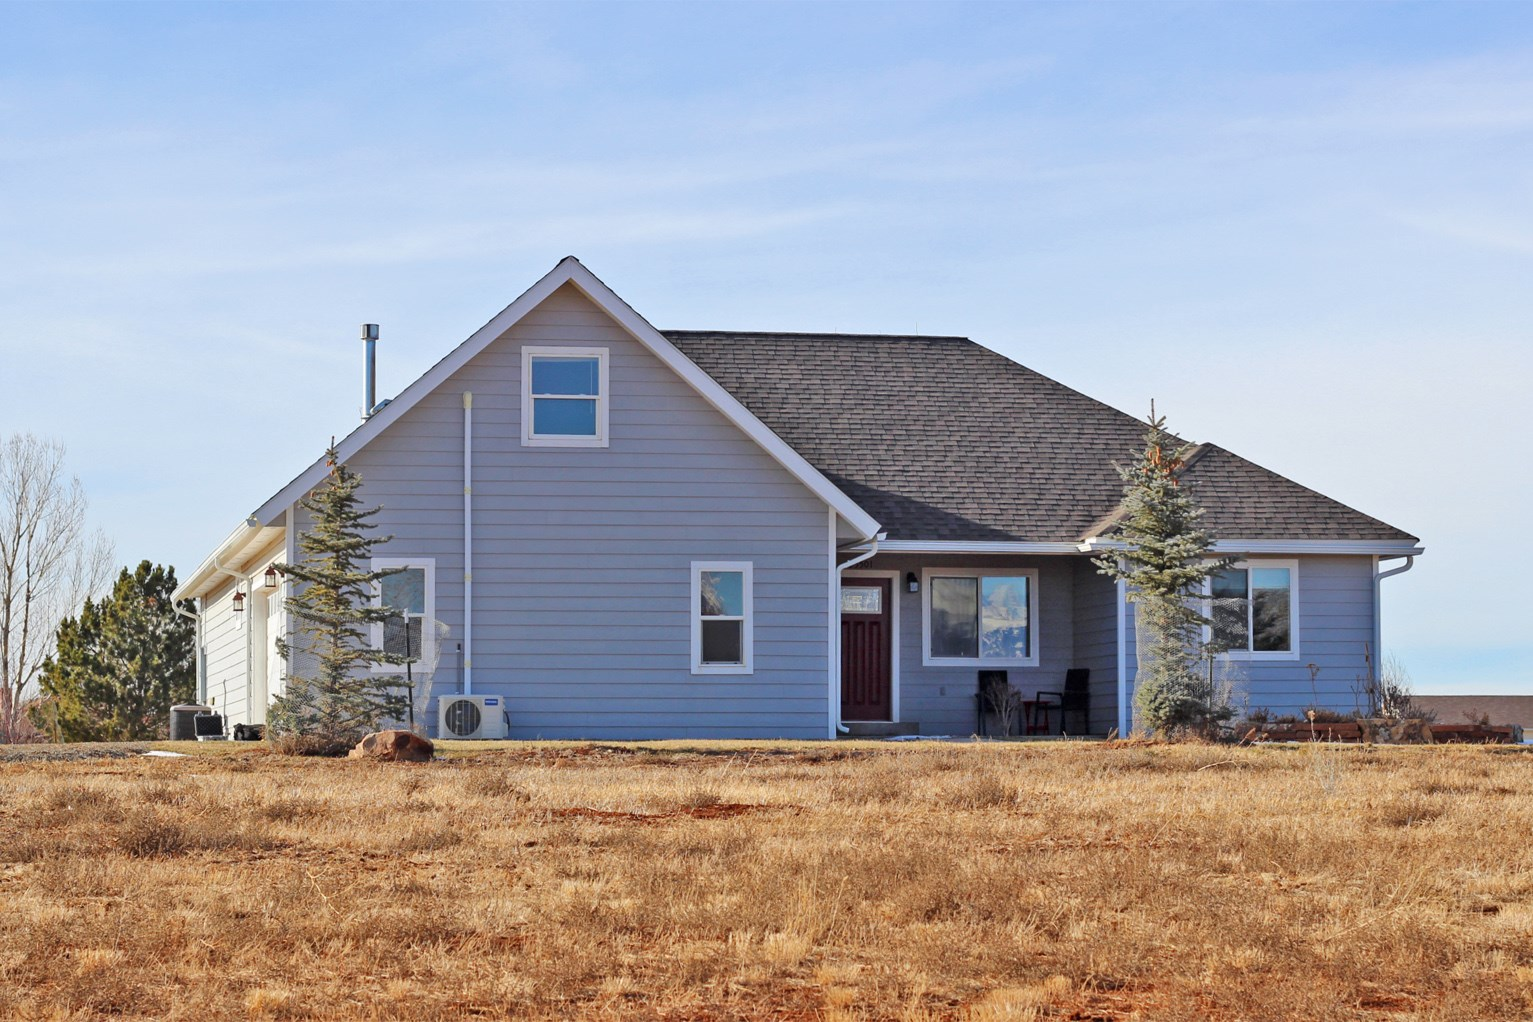 Home for sale close to town location in Cortez Colorado!